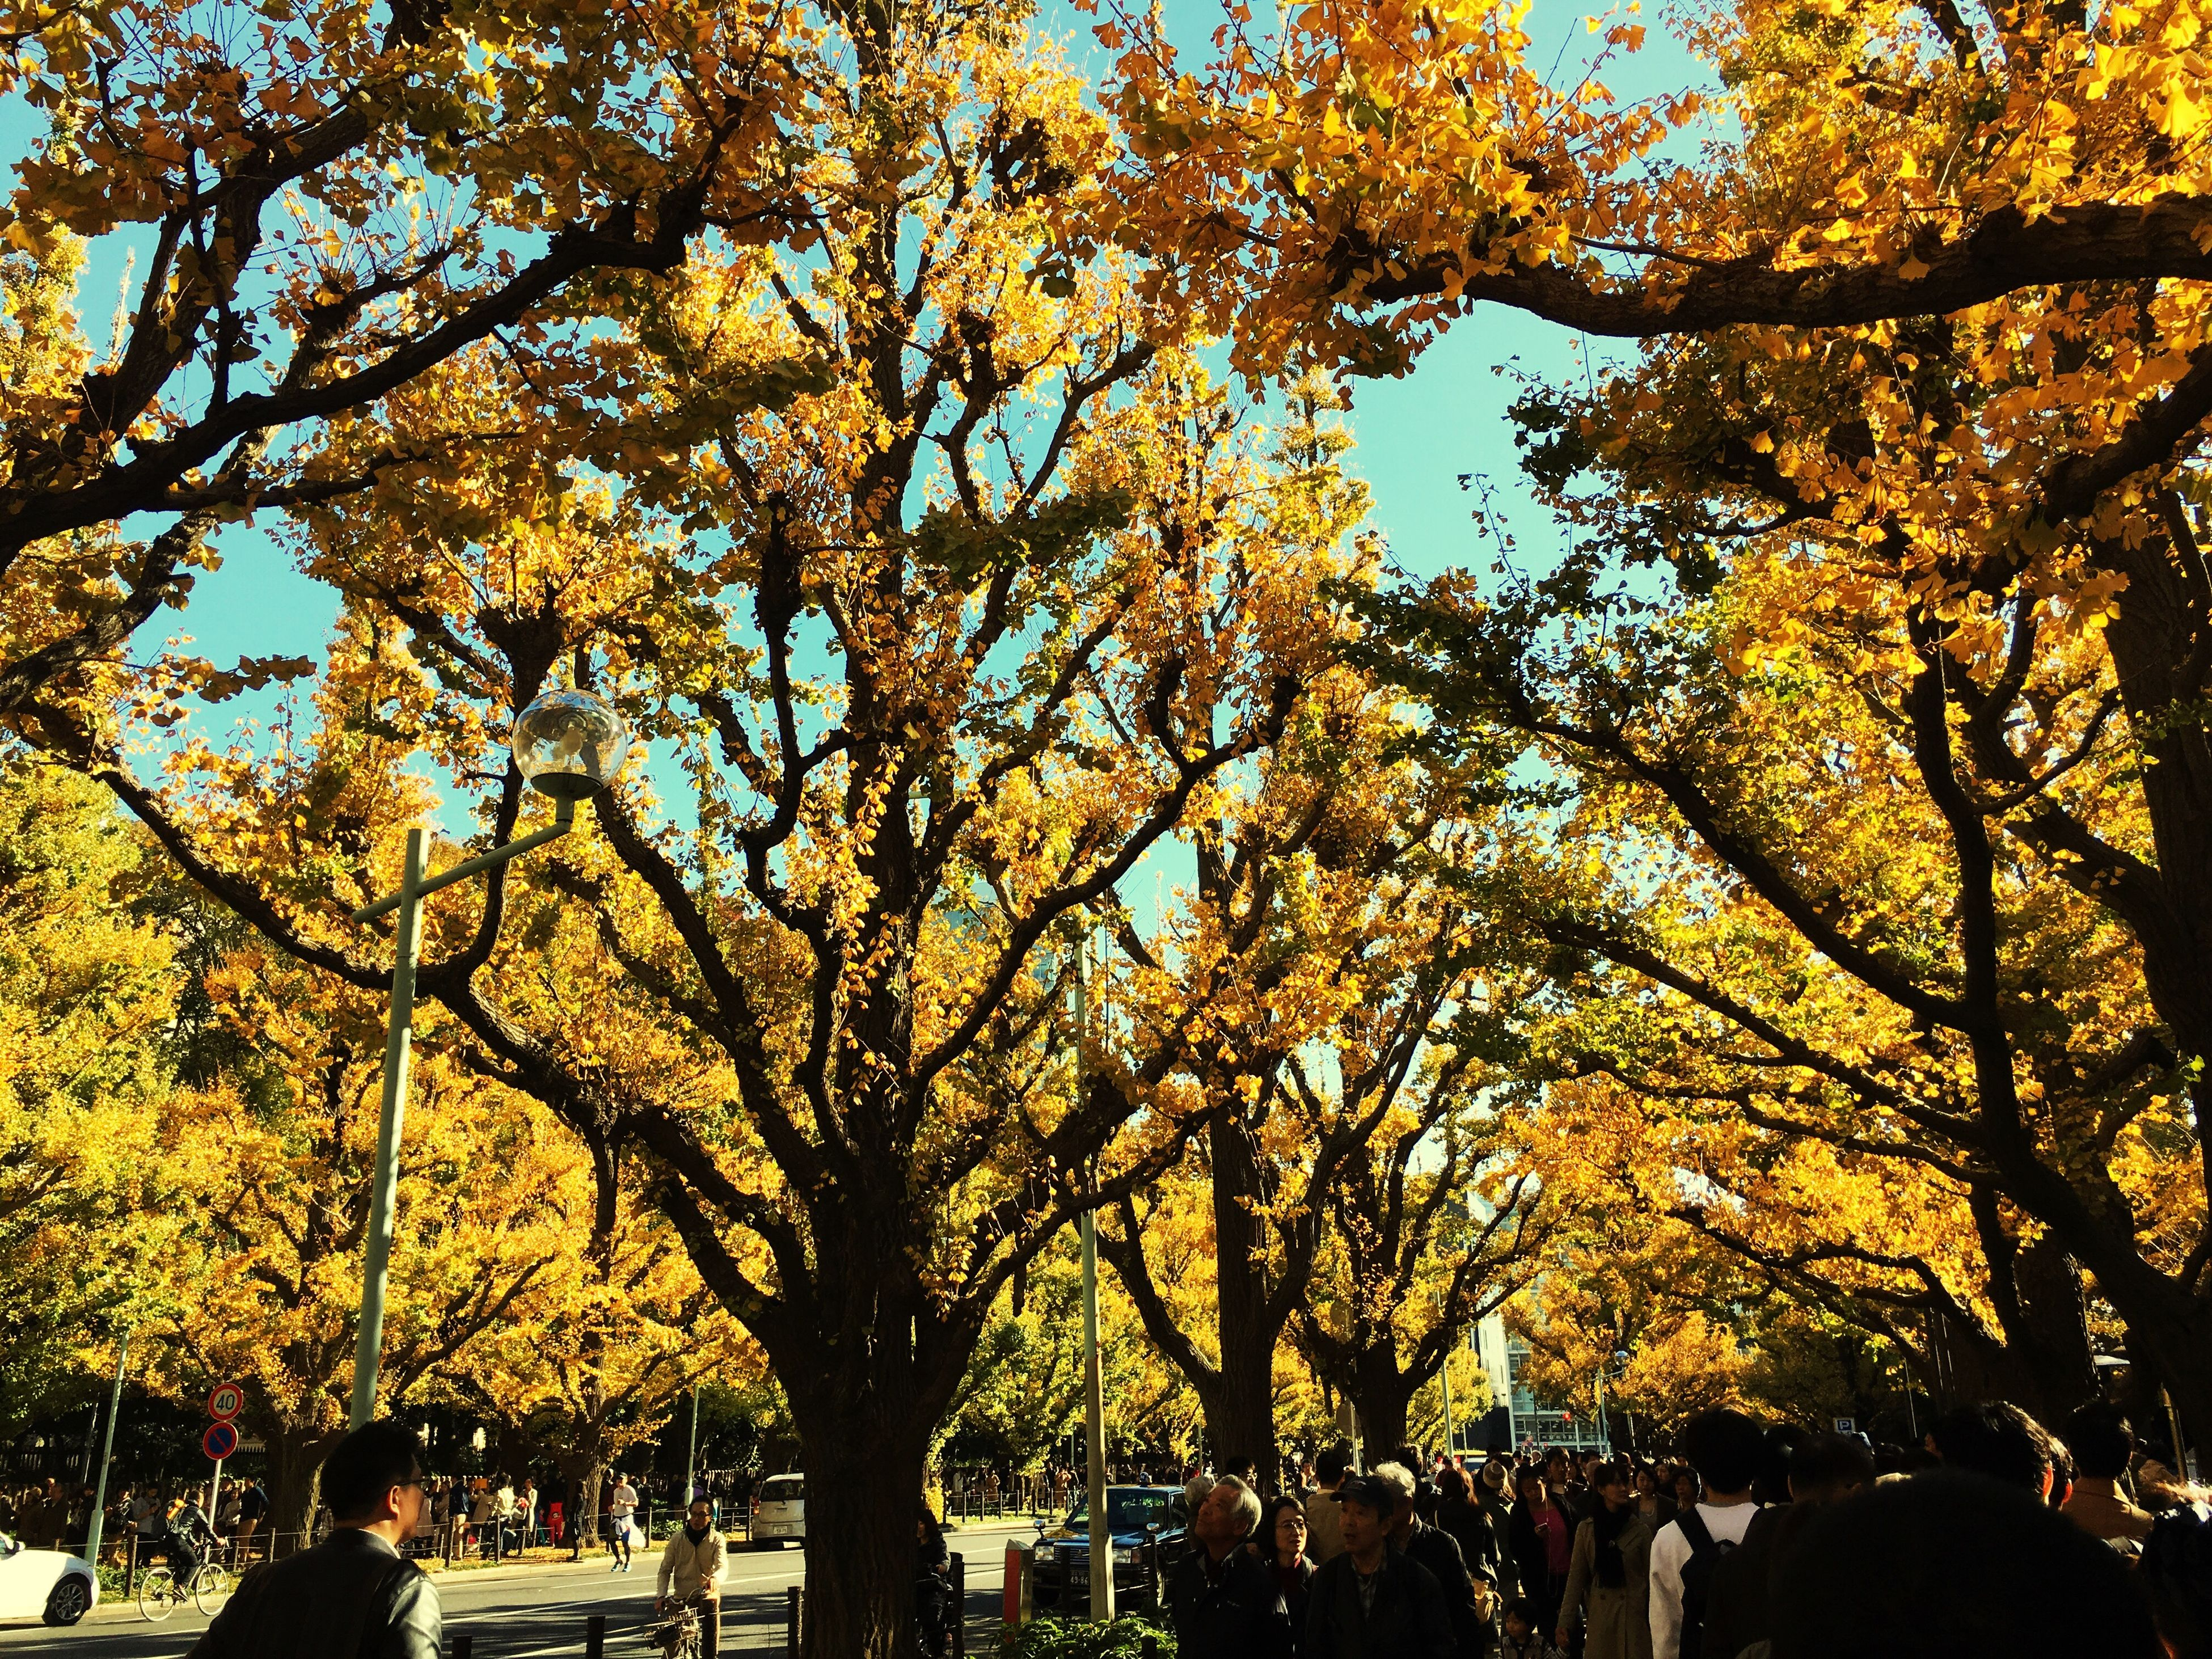 tree, yellow, growth, branch, autumn, low angle view, change, beauty in nature, nature, season, tranquility, park - man made space, clear sky, outdoors, sunlight, day, sky, scenics, leaf, flower